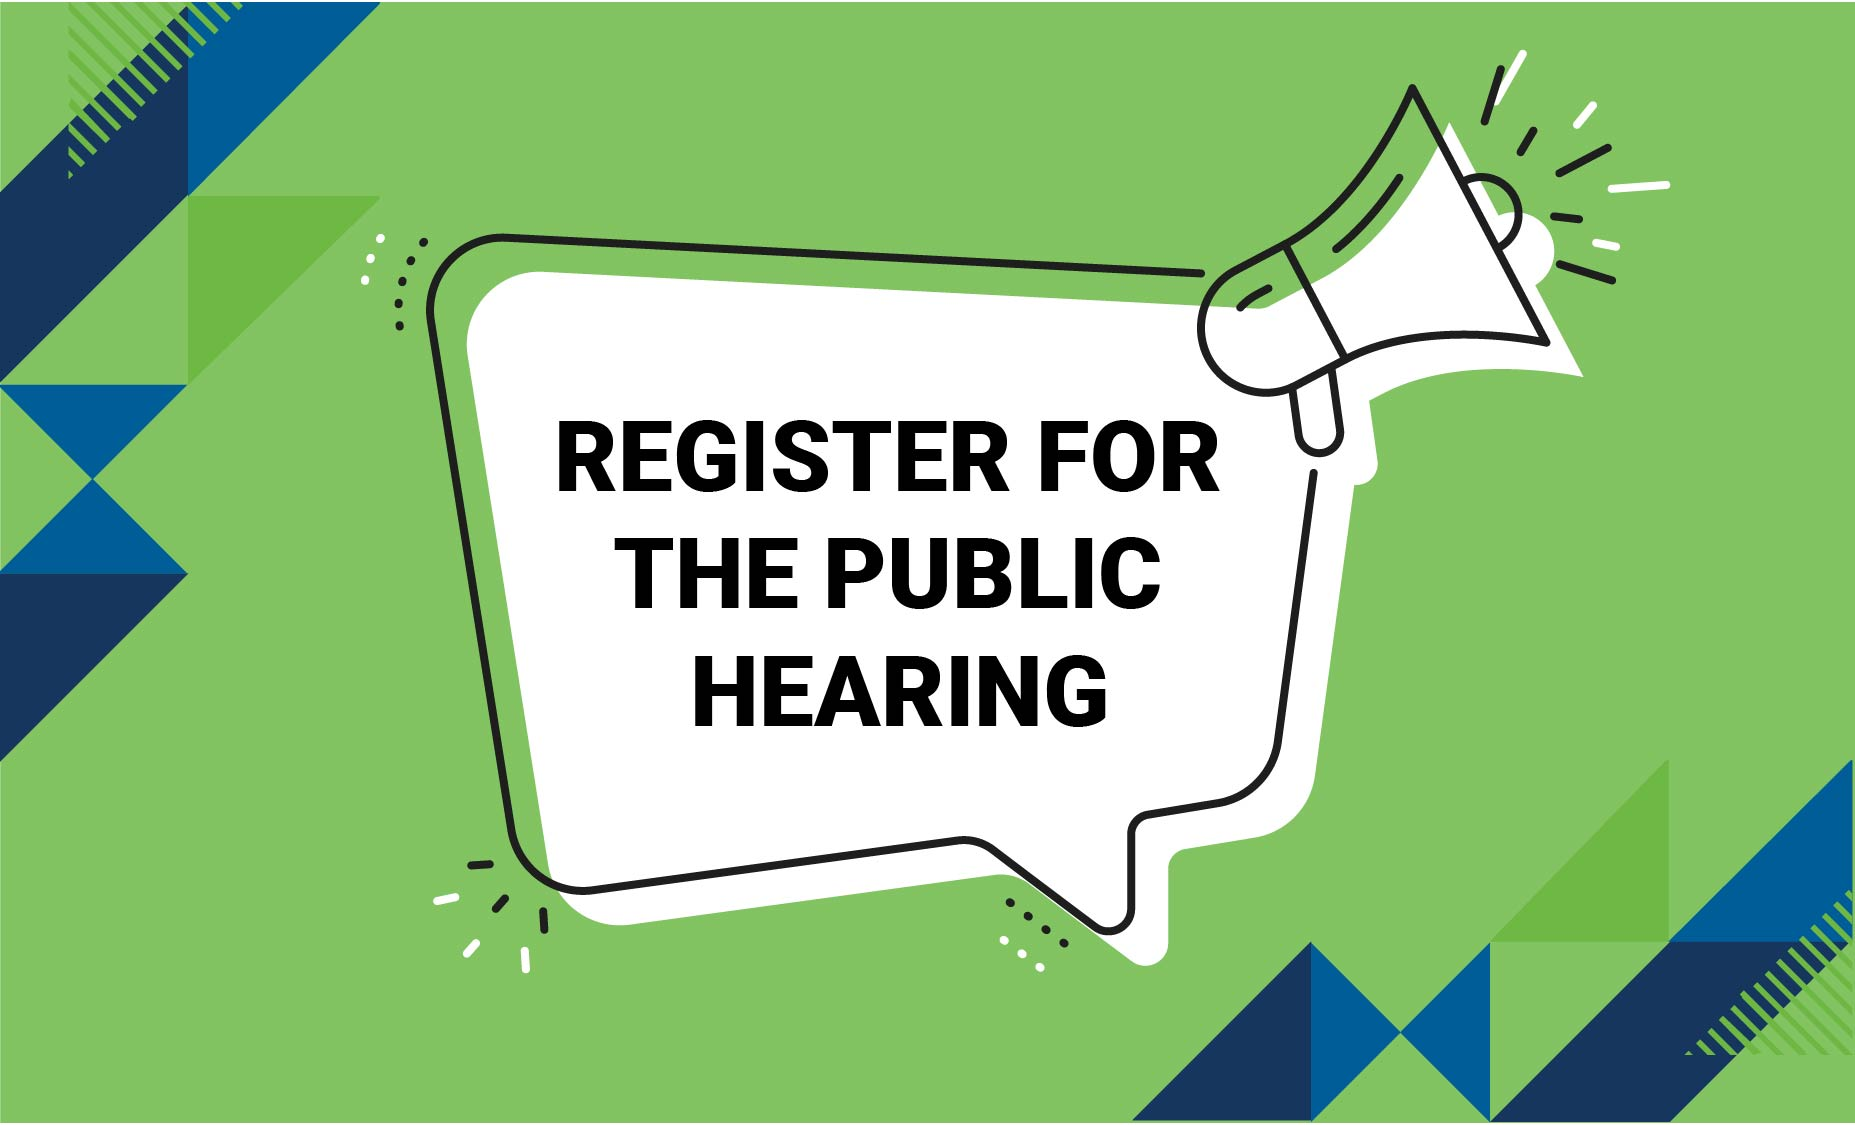 Graphic encouraging users to register to speak at the public hearing